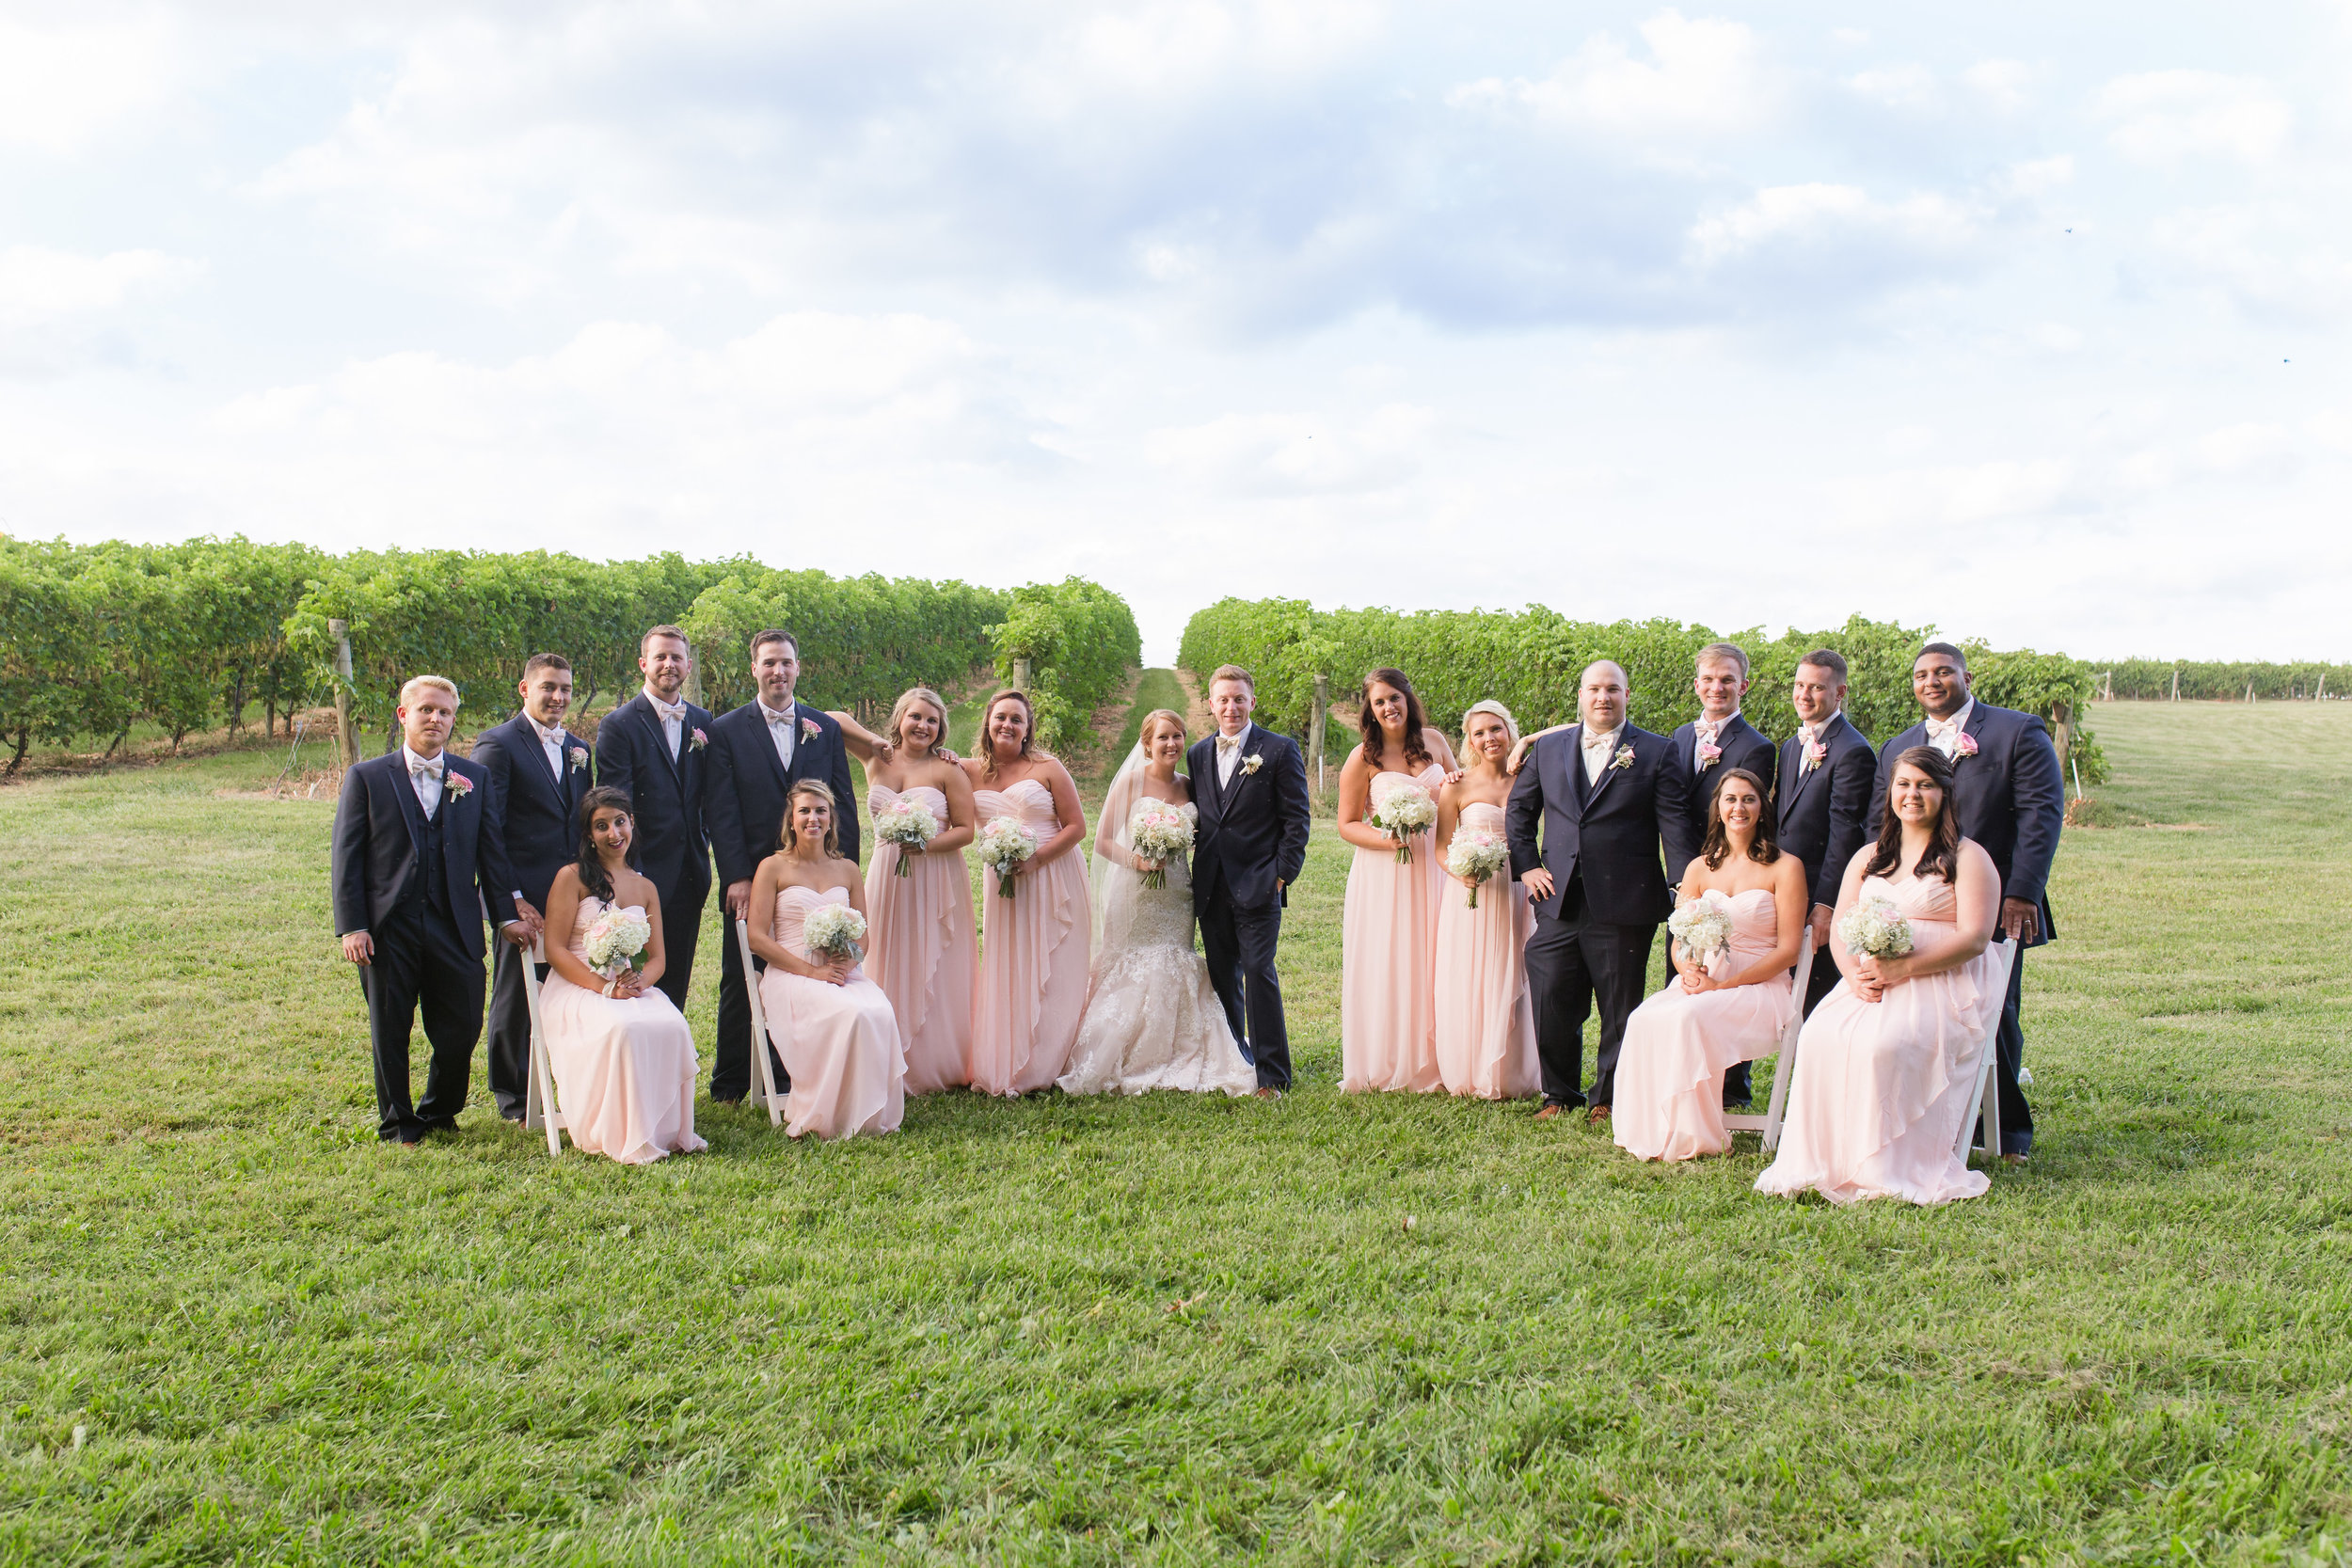 wedding party13.jpg